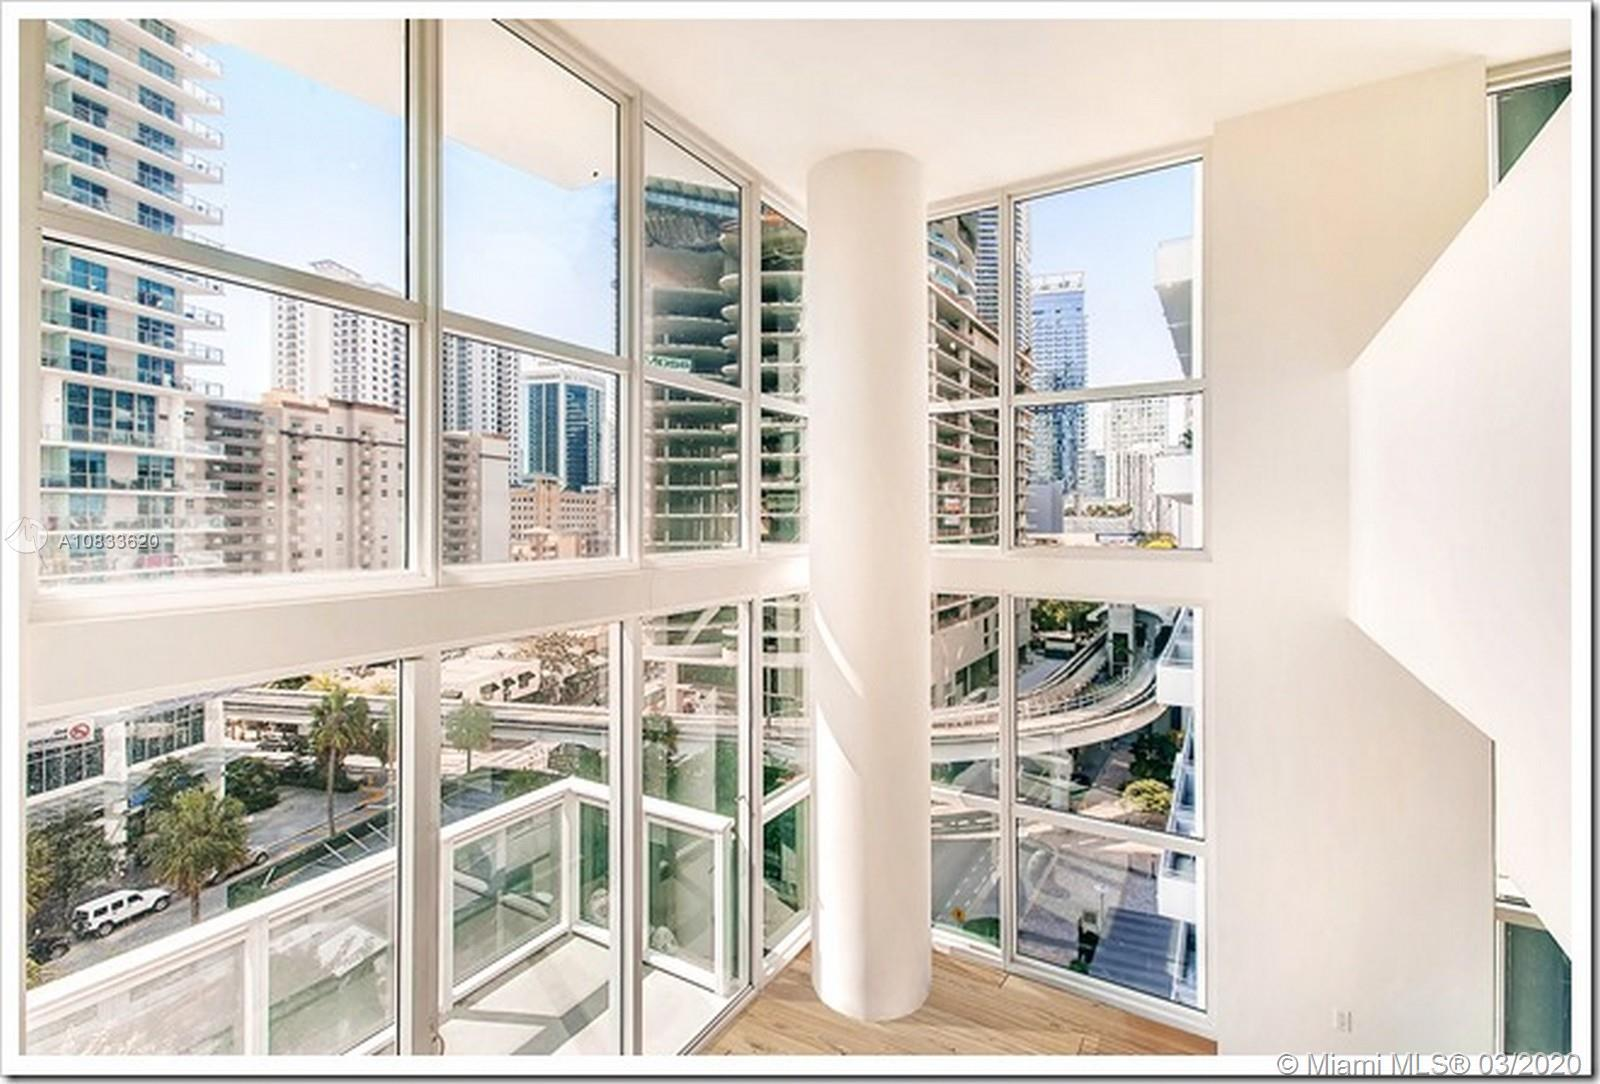 Great opportunity to own a spectacular 2 story unit at The Bond Brickell. Very bright and spacious (